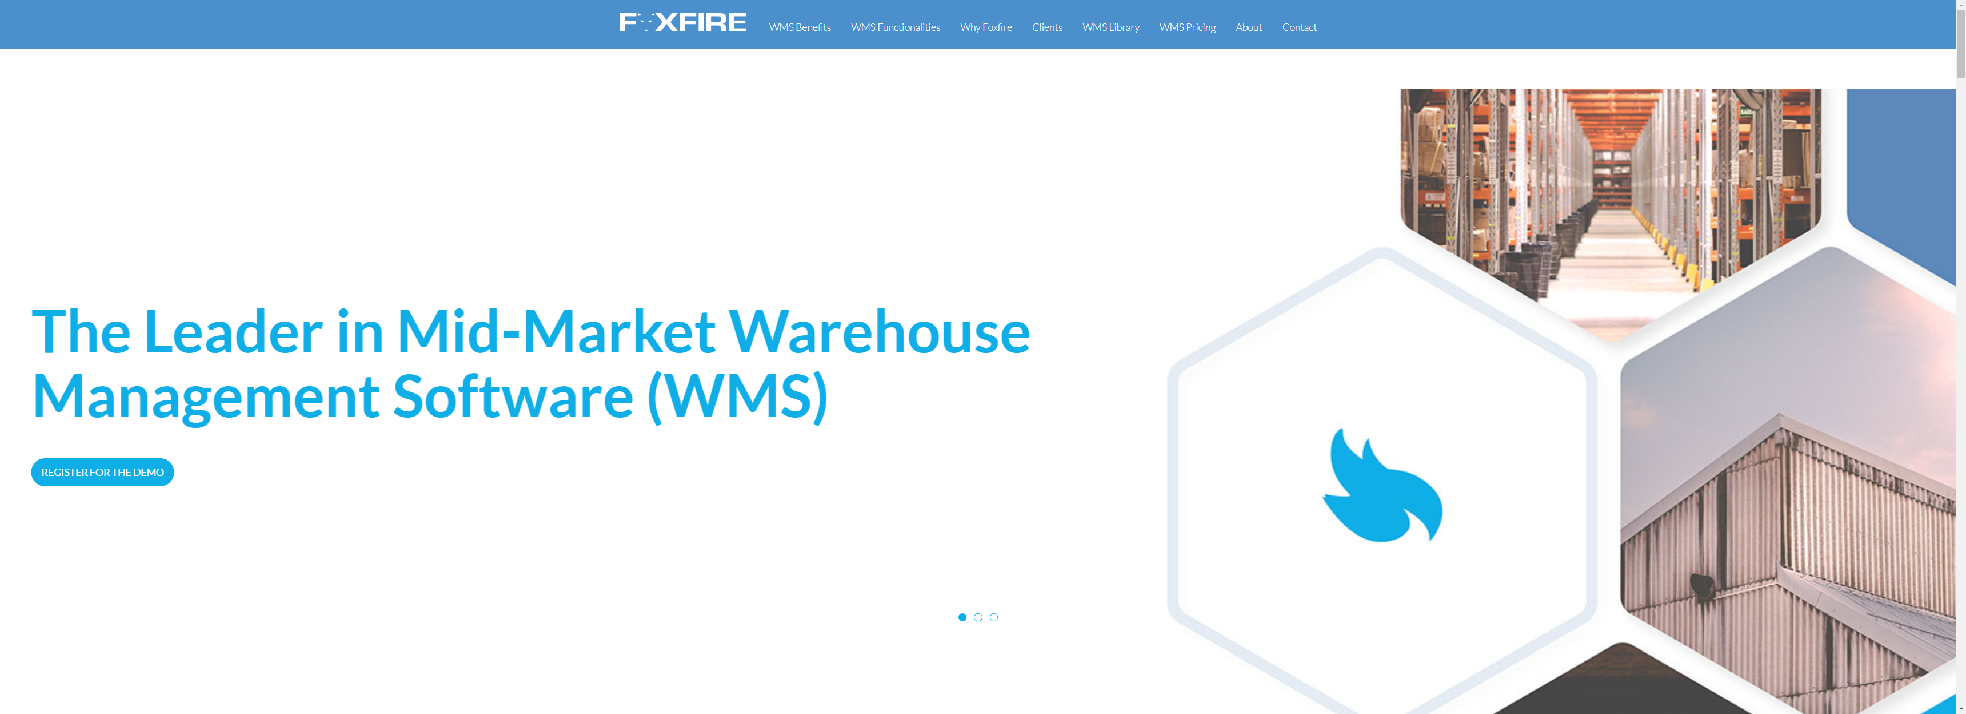 Top 13 Warehouse Management Software Systems (WMS) for Small